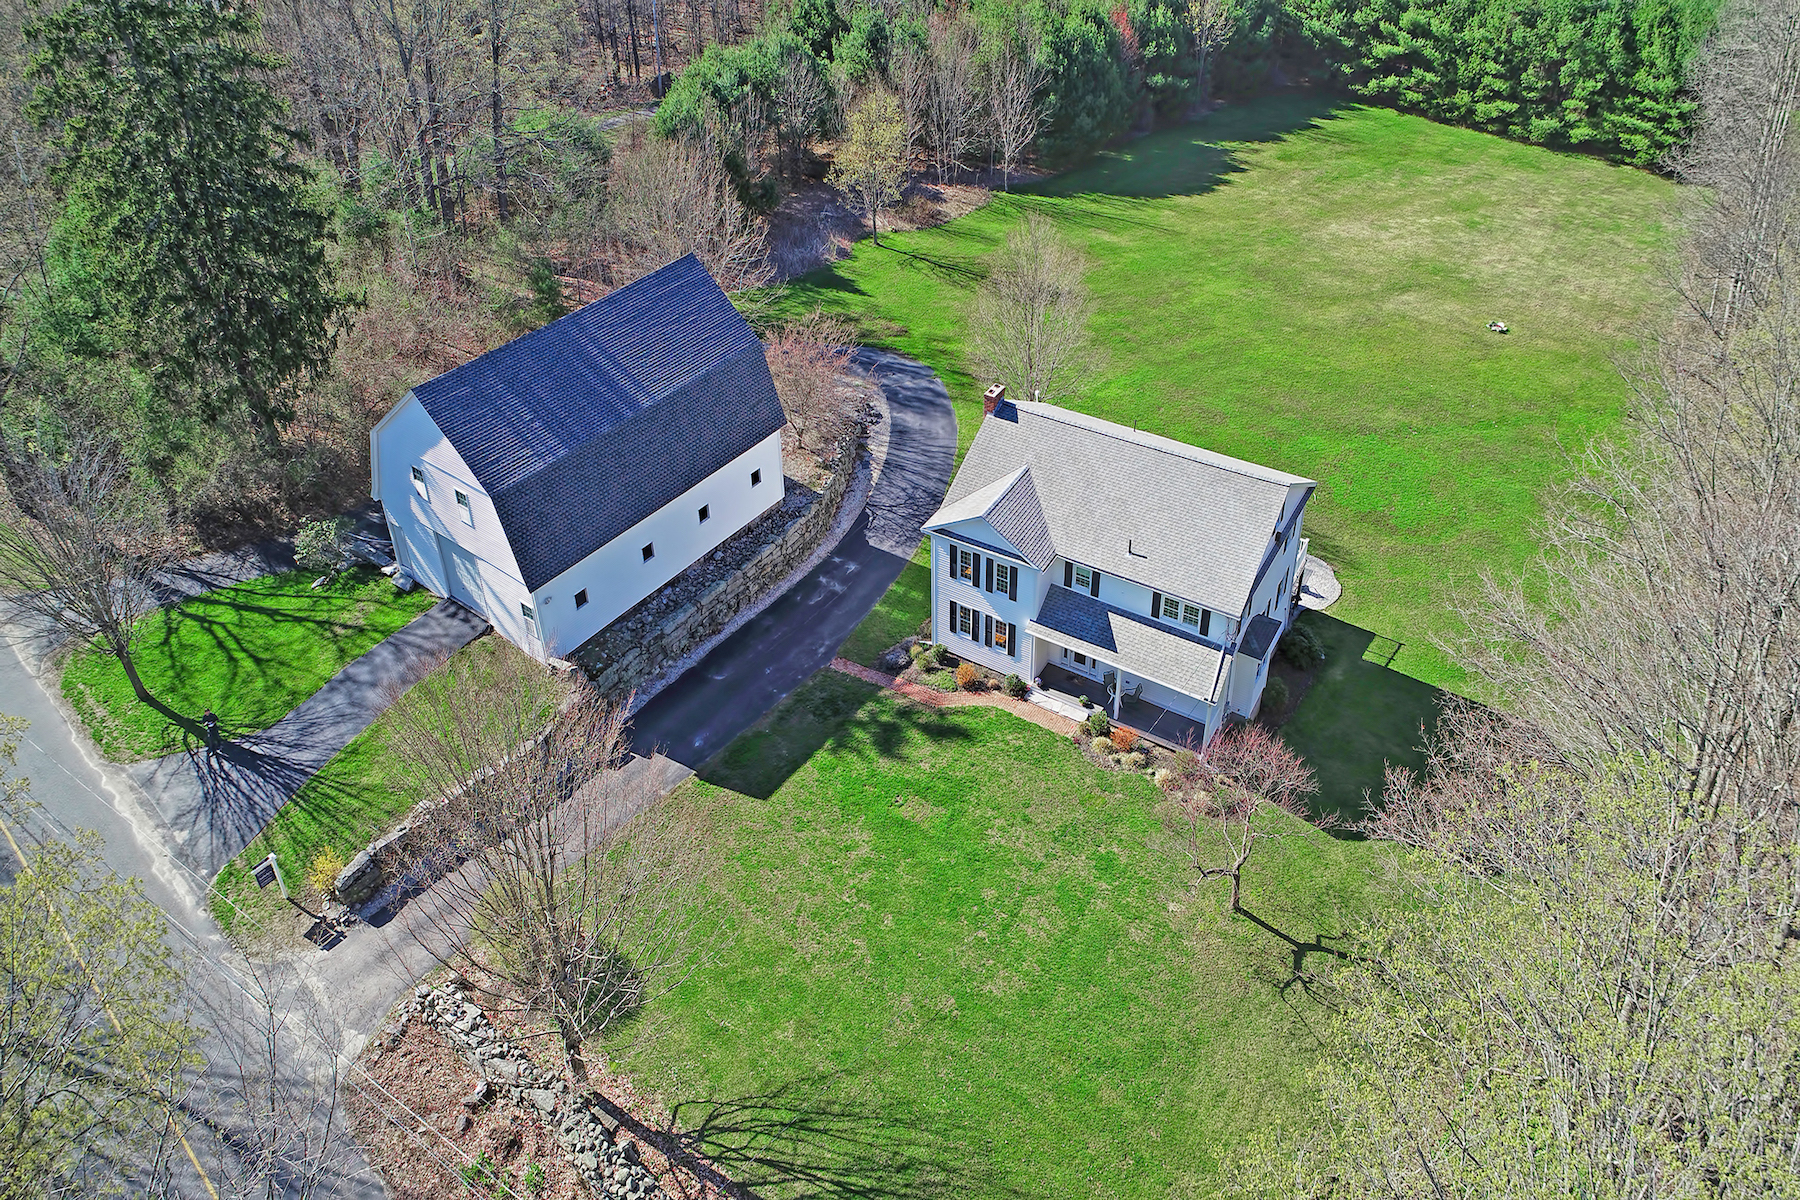 Single Family Homes for Sale at 47 AF Putnam Road 47 AF Putman Road Charlton, Massachusetts 01507 United States